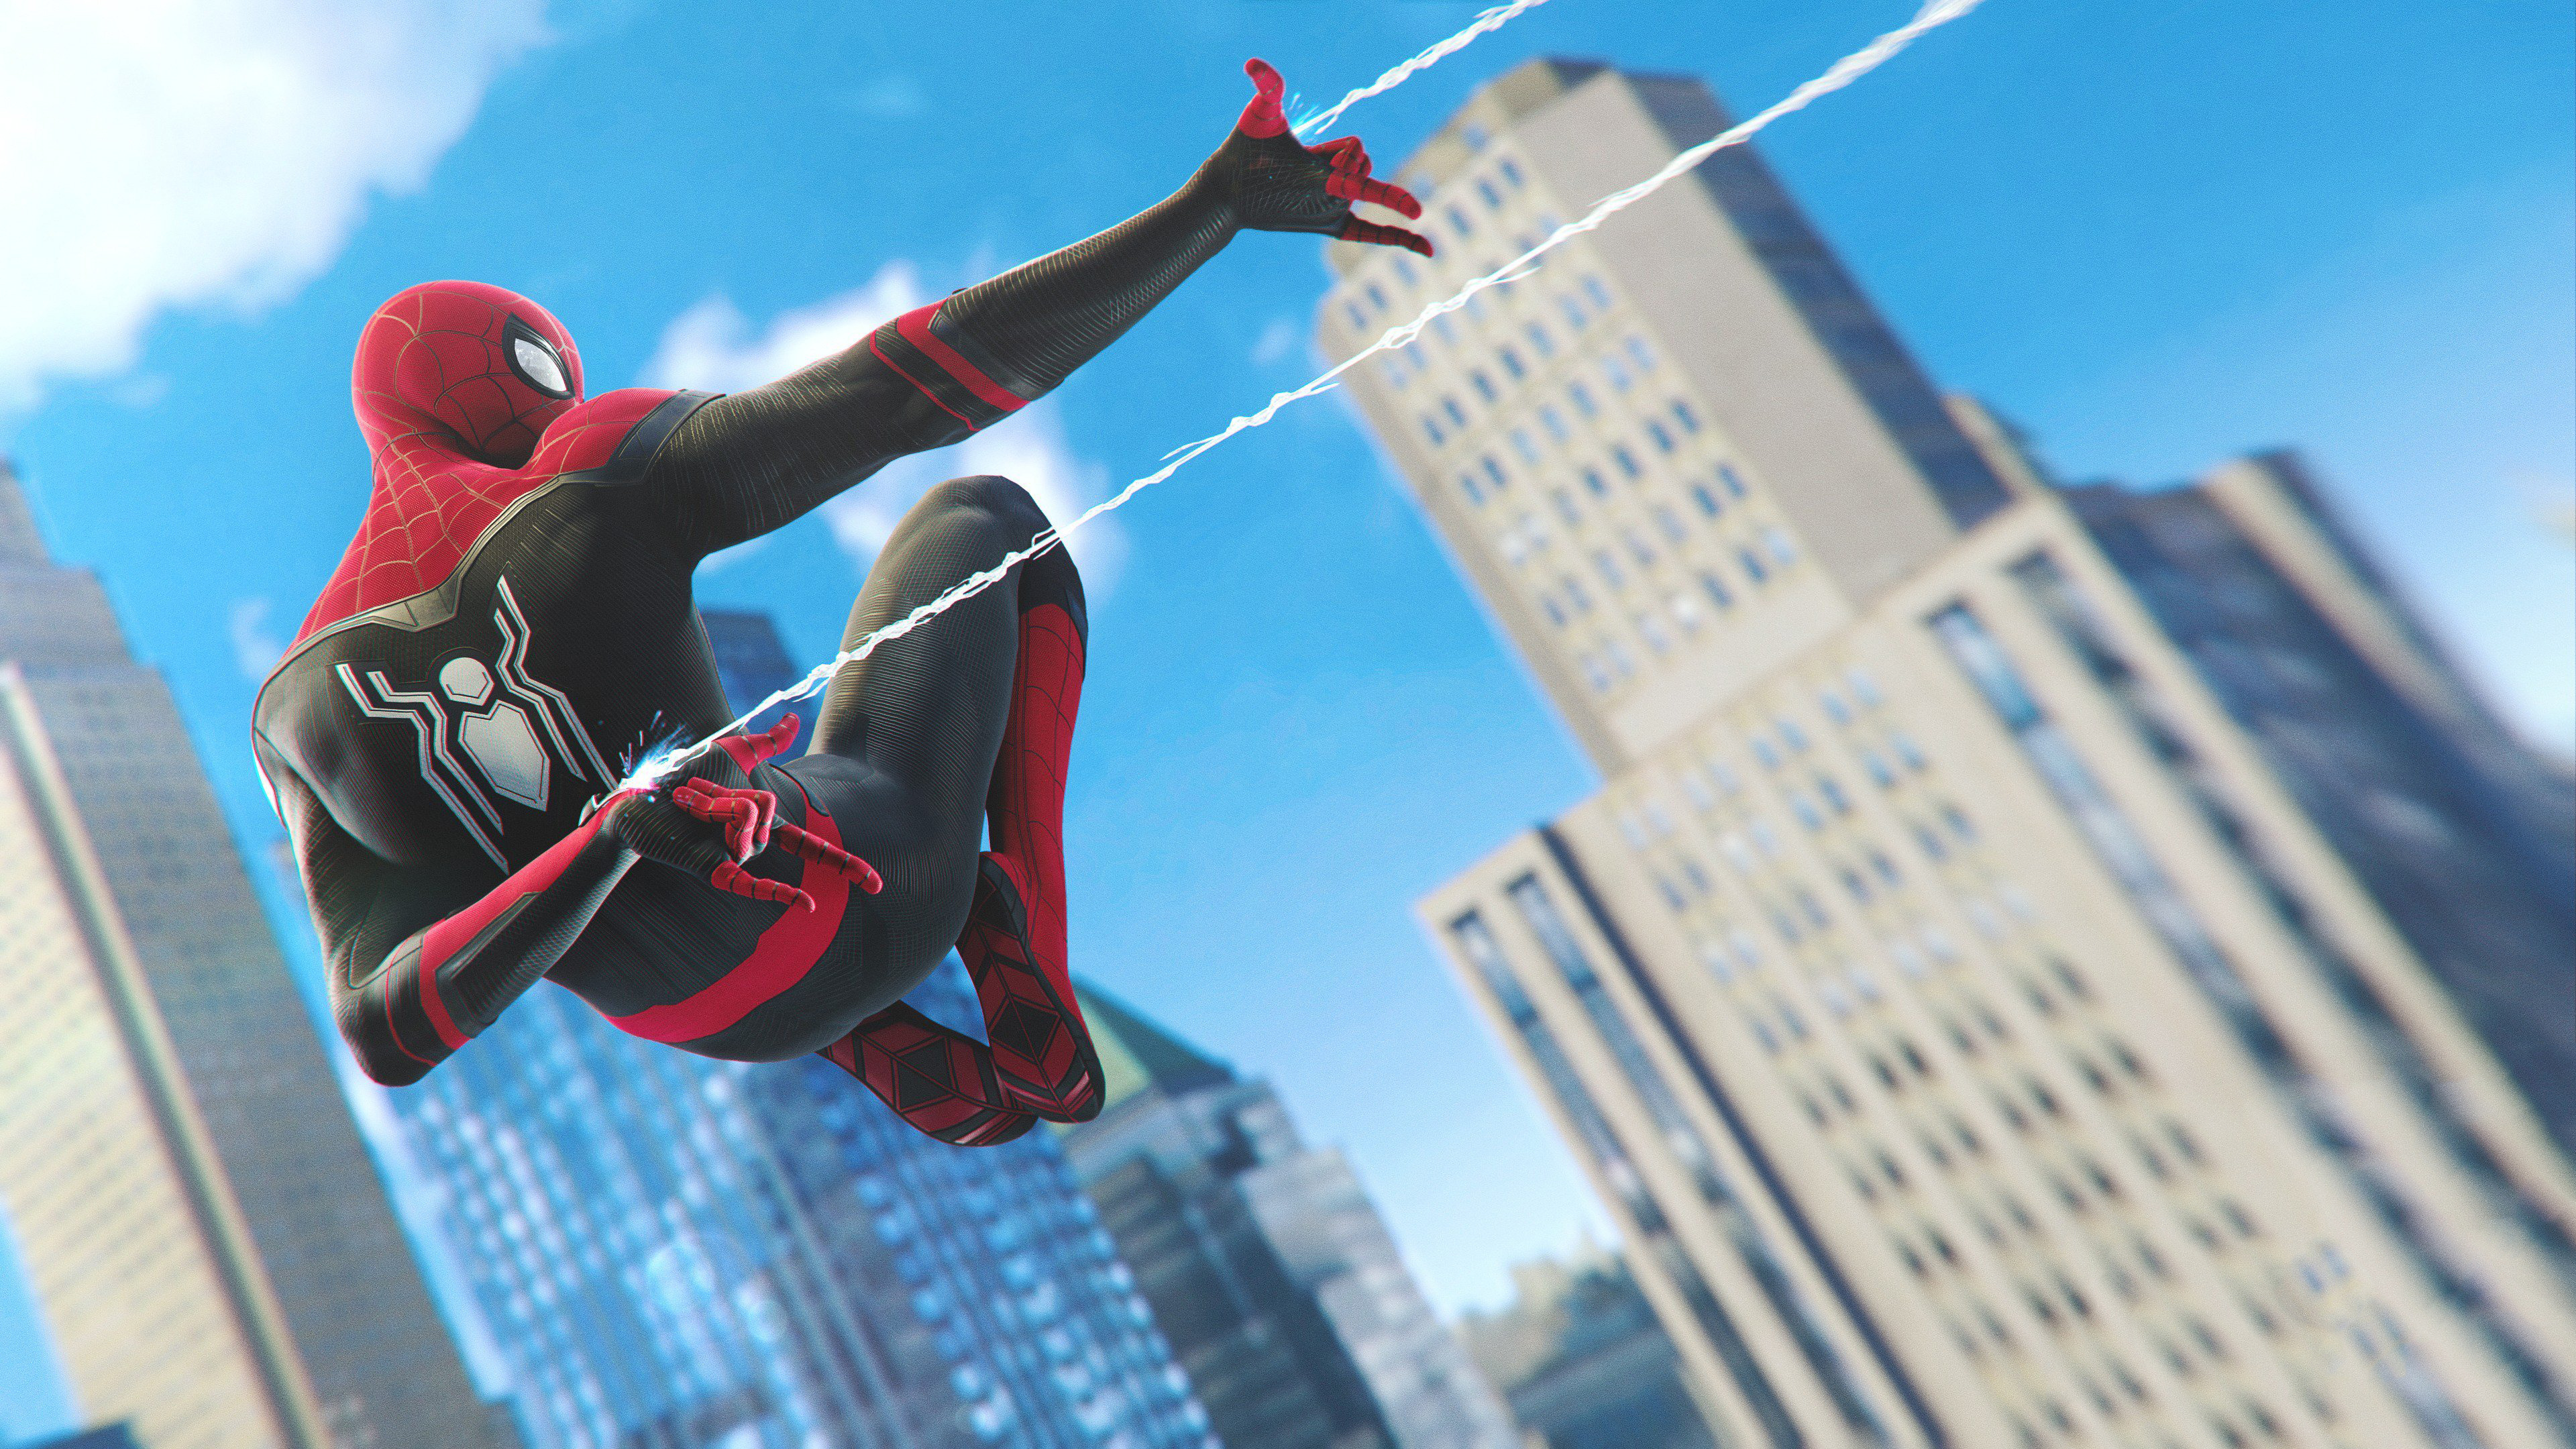 spiderman ps4 far from home upgraded stealth suit 1565054356 - Spiderman Ps4 Far From Home Upgraded Stealth Suit - superheroes wallpapers, spiderman wallpapers, spiderman ps4 wallpapers, ps games wallpapers, hd-wallpapers, games wallpapers, 4k-wallpapers, 2019 games wallpapers